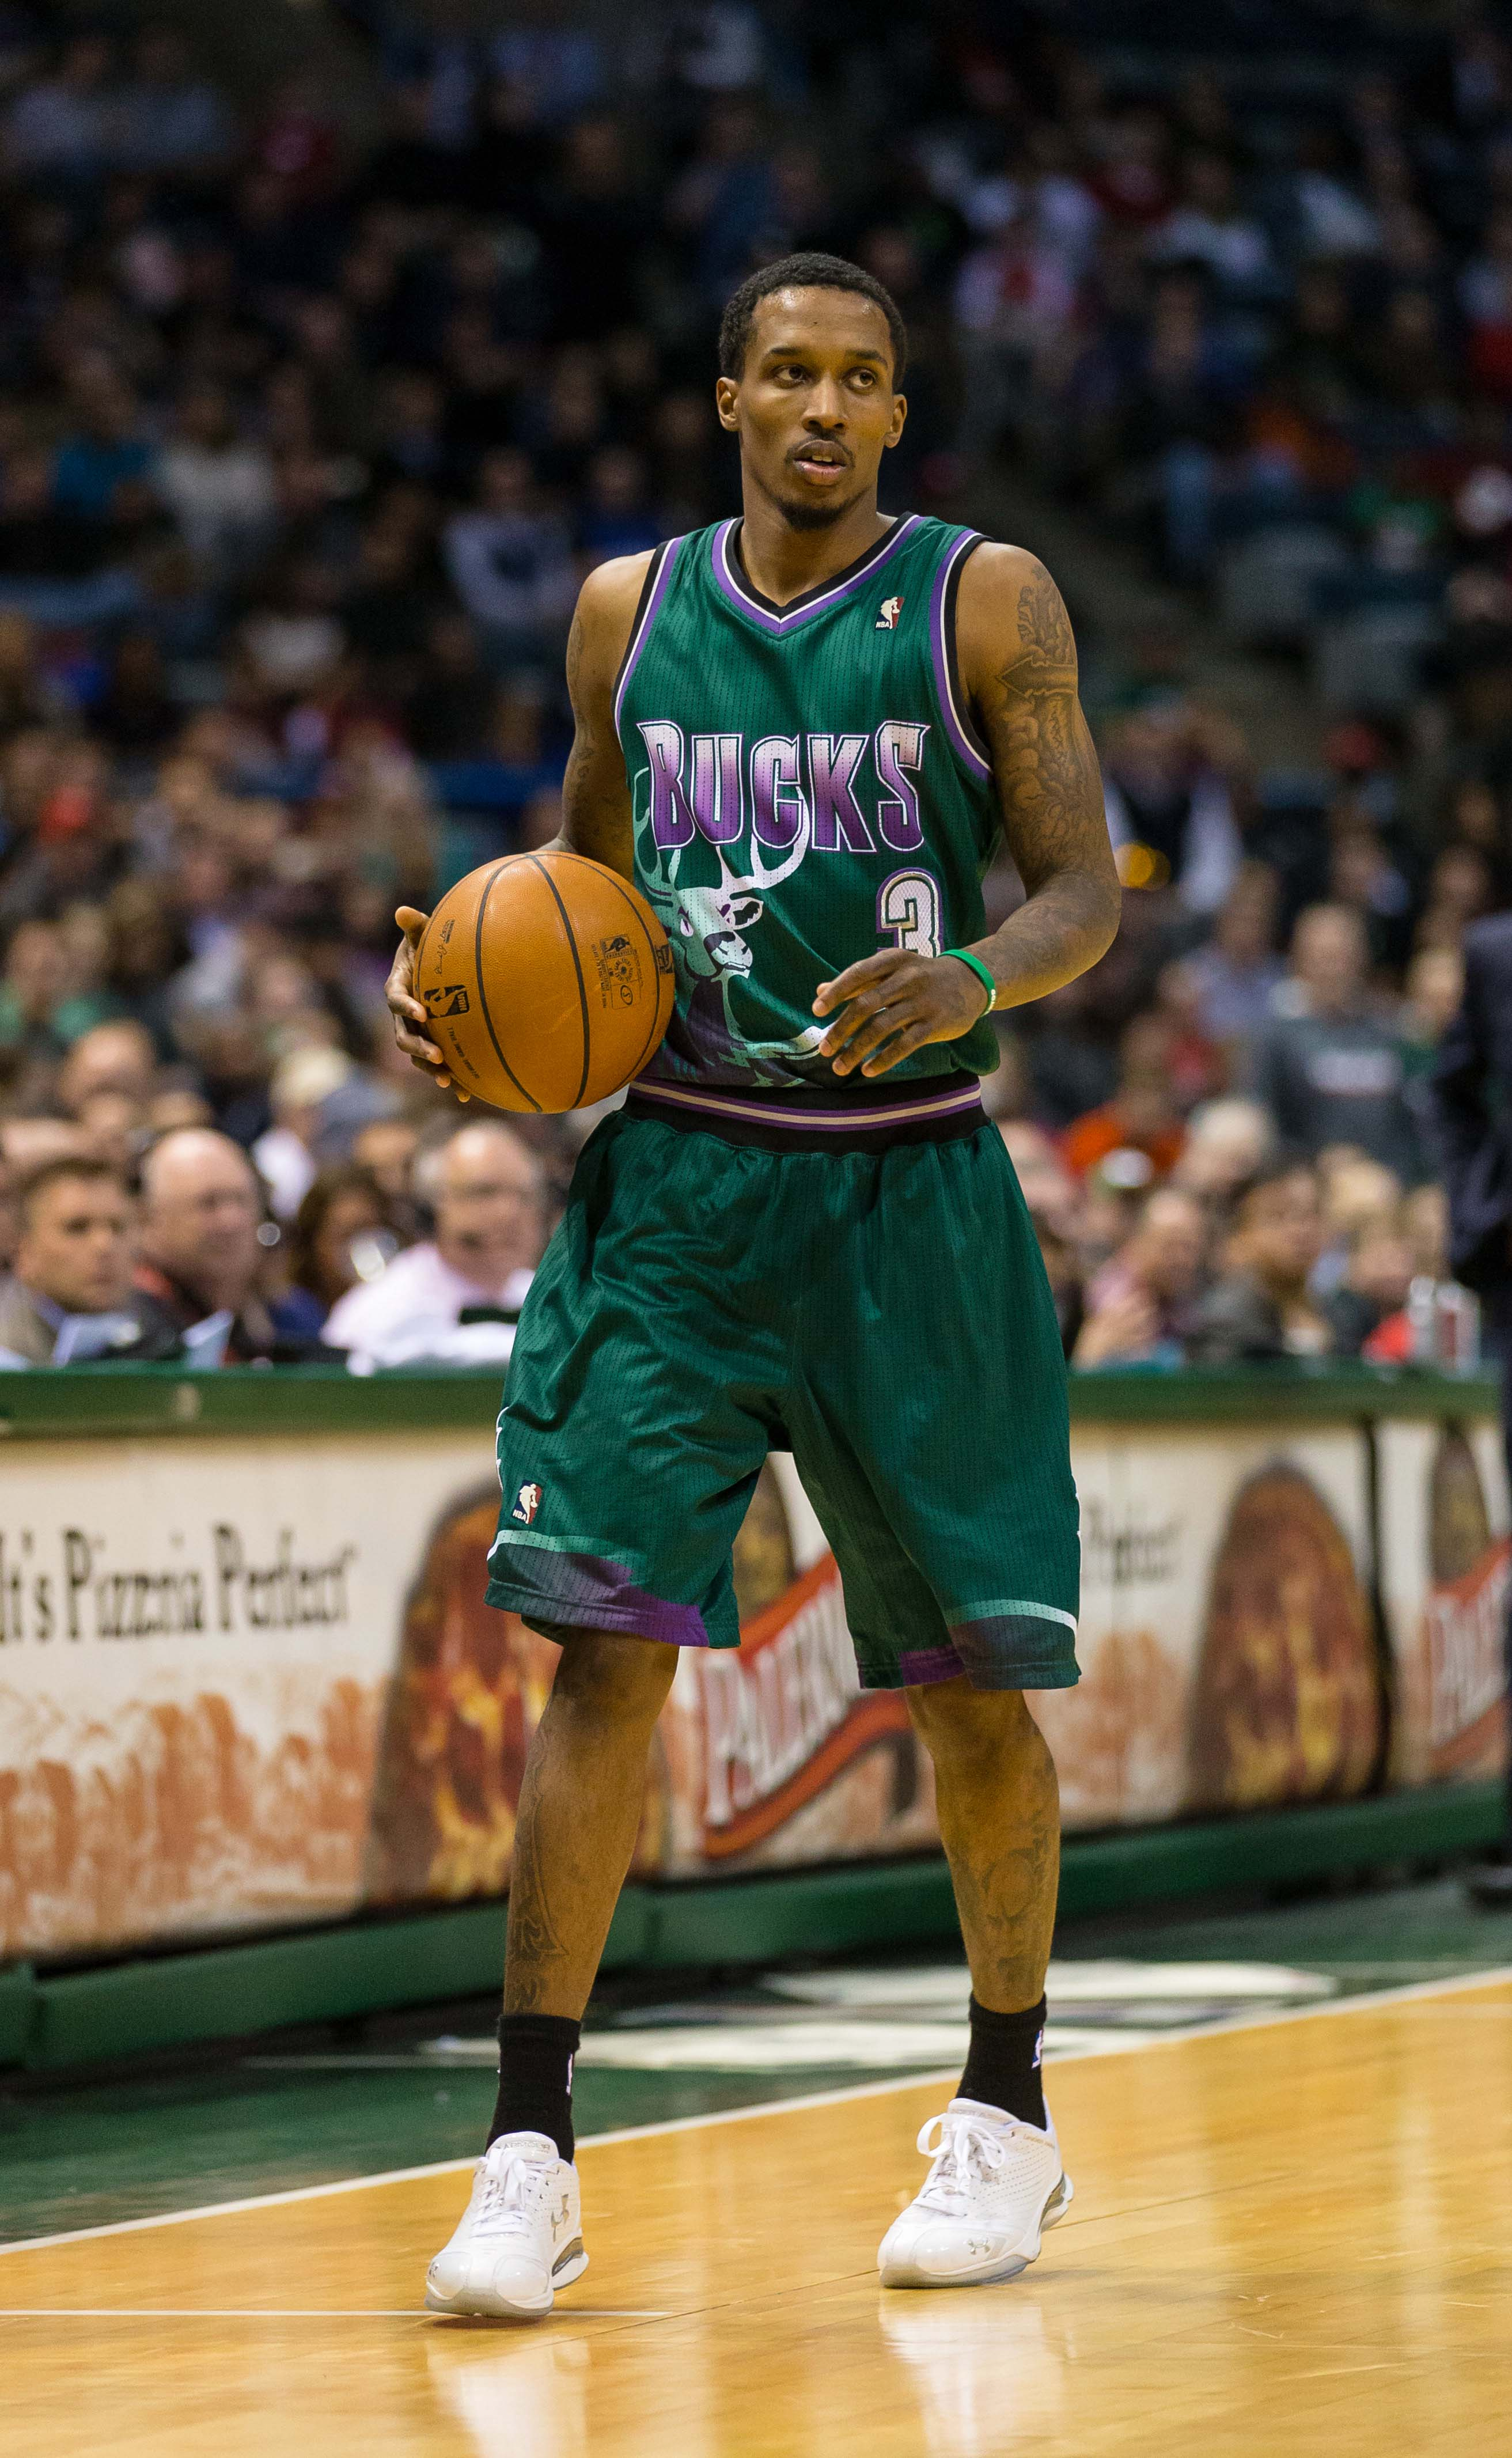 Brandon Jennings expects a big contract and team improvements if the Bucks want to keep him. (USA Today Sports)